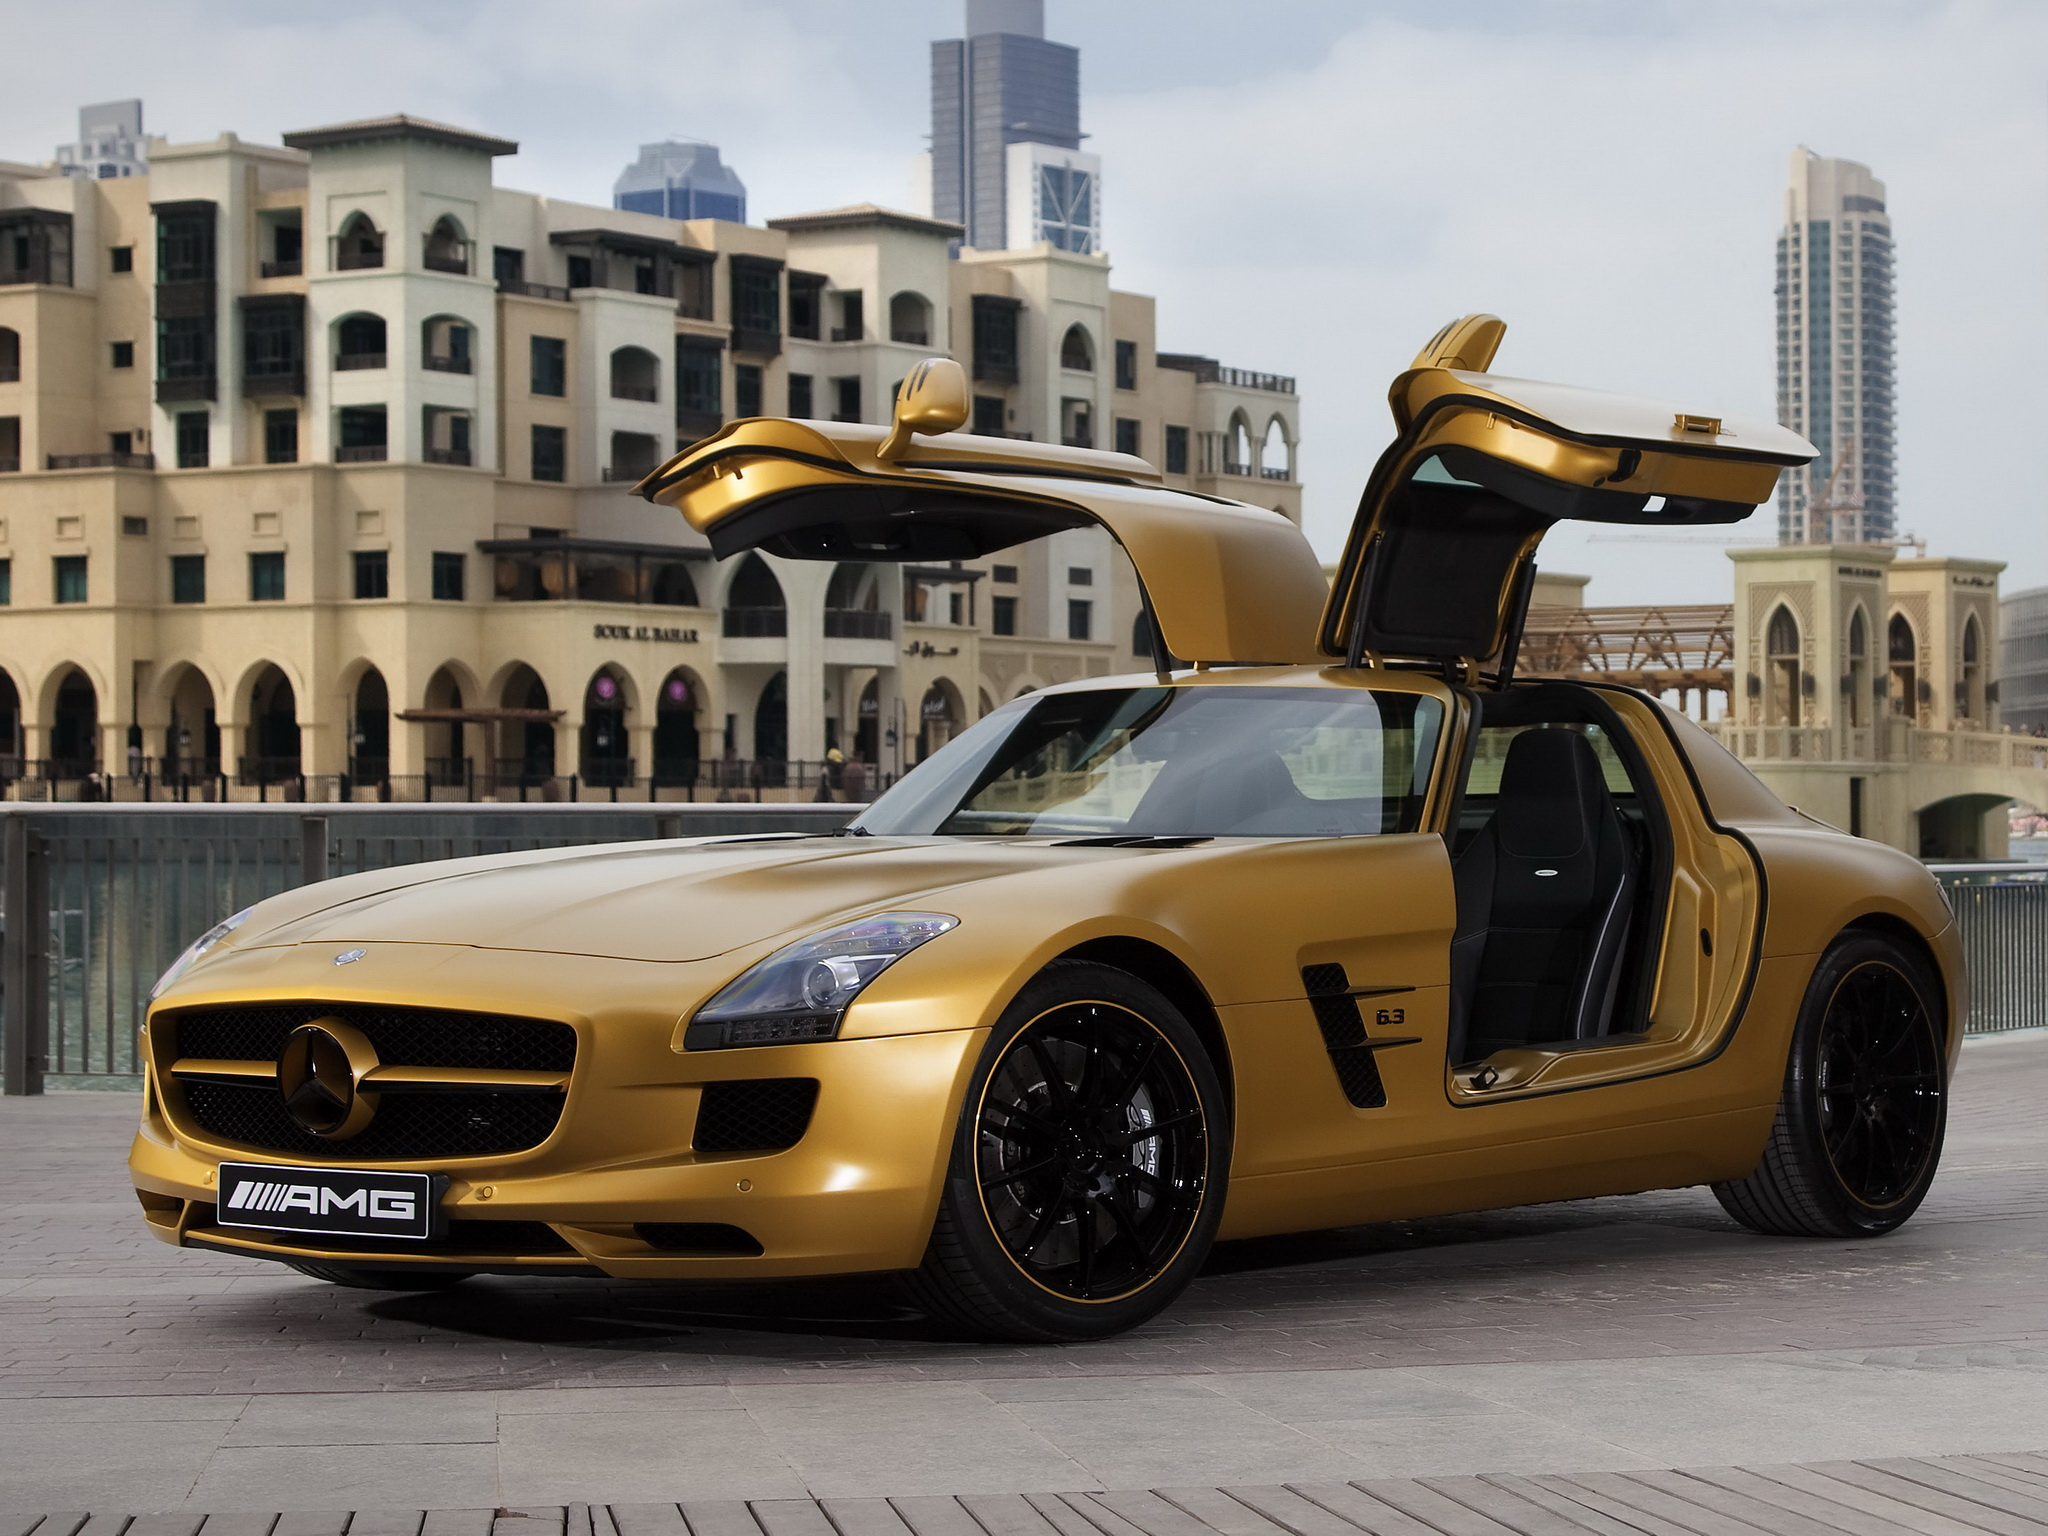 Mercedes Benz Images Mercedes Benz Sls Amg Desert Gold